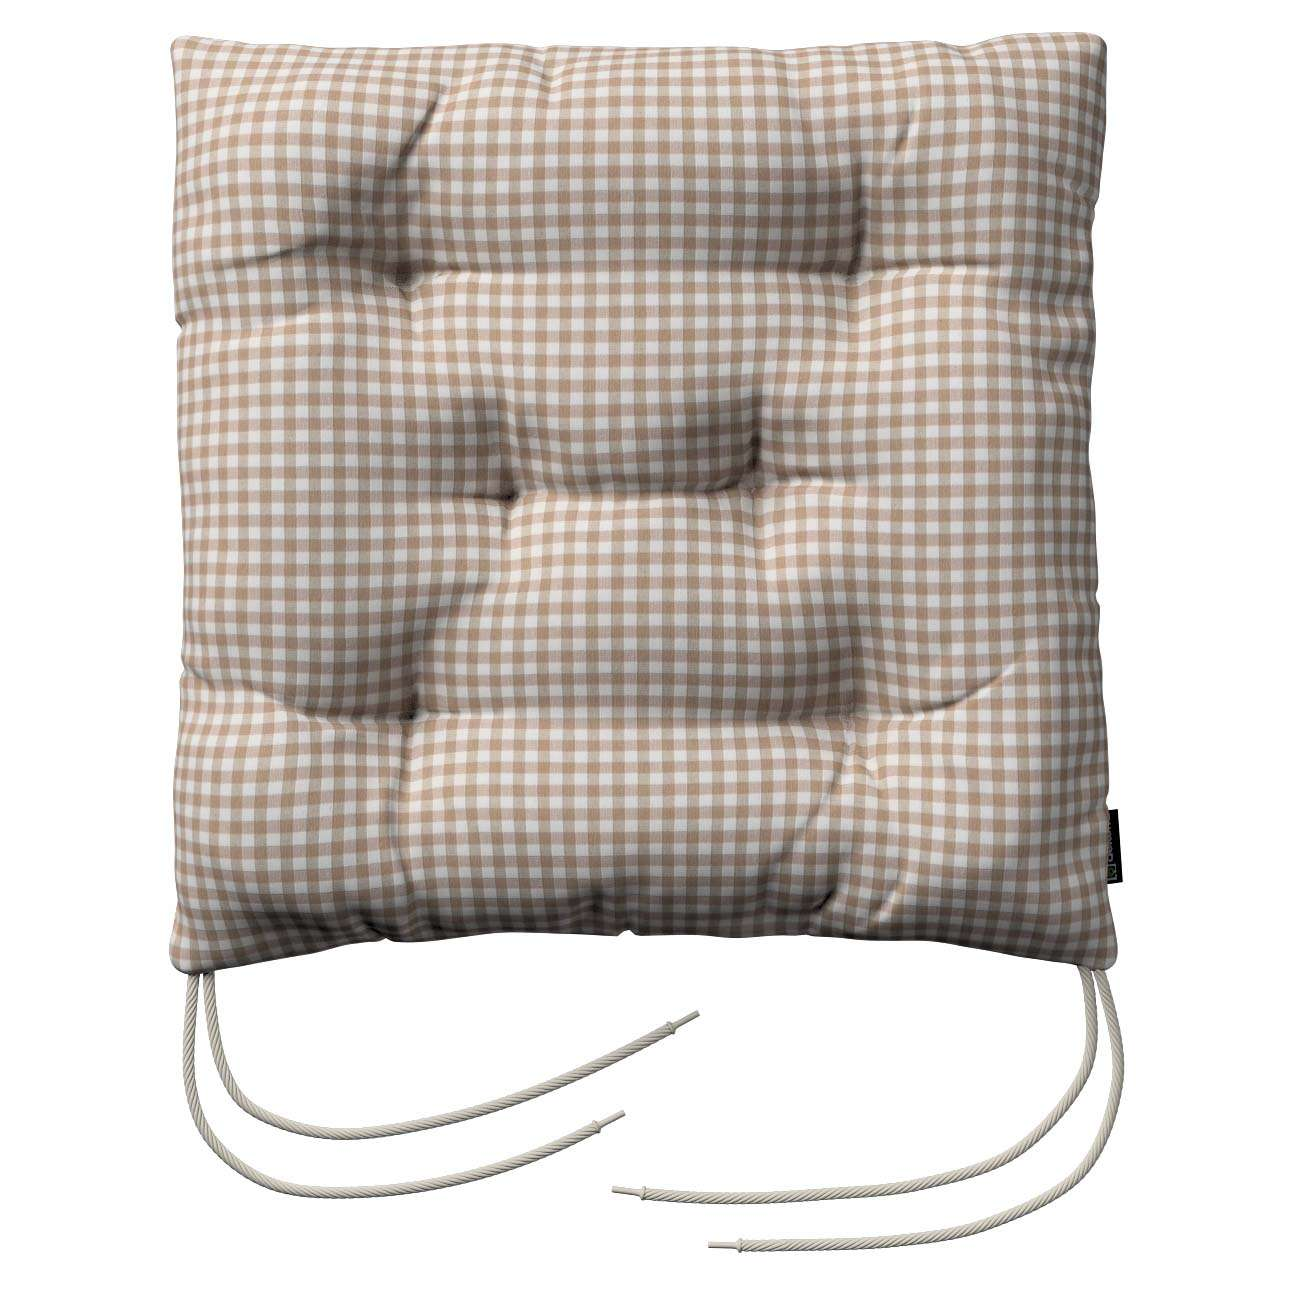 Jack seat pad with ties 40 × 40 × 8 cm (16 × 16 × 3 inch) in collection Quadro, fabric: 136-05